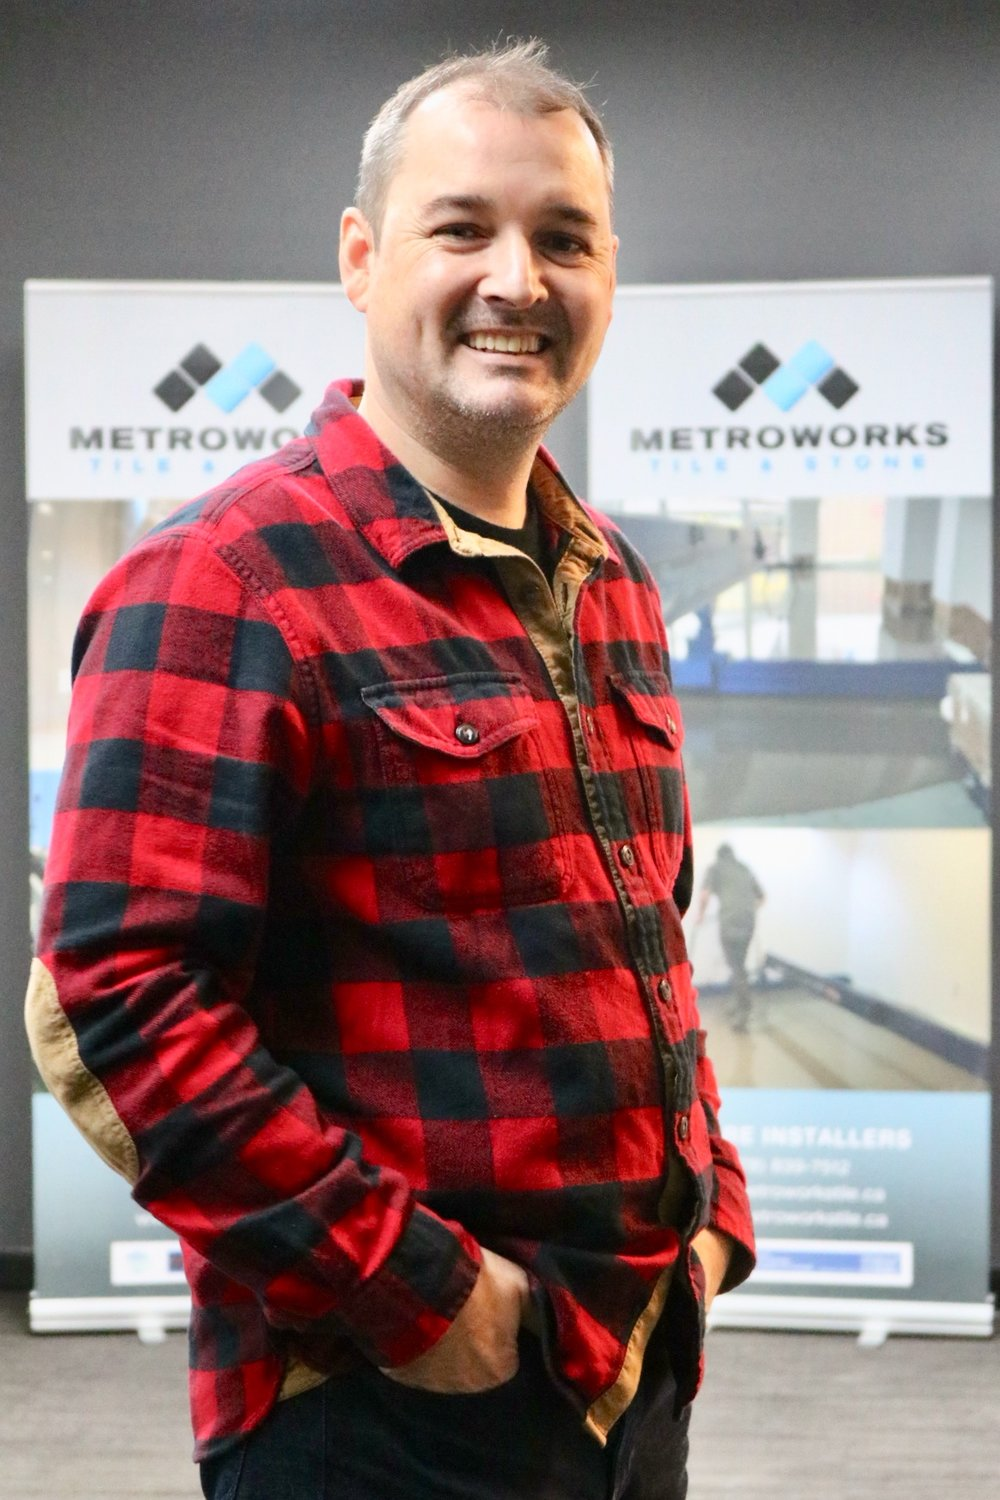 Shawn - Managing DirectorWhen Shawn became a tile setter, he knew that developing his skills and continuing to learn about the trade is the only way to deliver high-quality work, in which he can take pride. Shawn started Metroworks in Ontario, where he is from originally. A few years later he moved to the West Coast and established his company here. Metroworks quickly grew from a one-person operation to a small tiling crew, and then to the company it is today. Shawn's growth mindset leads Metroworks Group into being a modern company providing high-quality craftsmanship, excellent customer service, and continuous professional development for its team.Shawn is passionate about youth sports and Metroworks currently sponsors a youth girls hockey team in his home town of Sault Ste. Marie. He and his spouse Teddy encourage their sons to be active and participate in sports and community events all-year round. On weekends and evening you'd find Shawn and his family on the local ski hills, camping in the summer, and staying active with their local Scouts group.Email Shawn